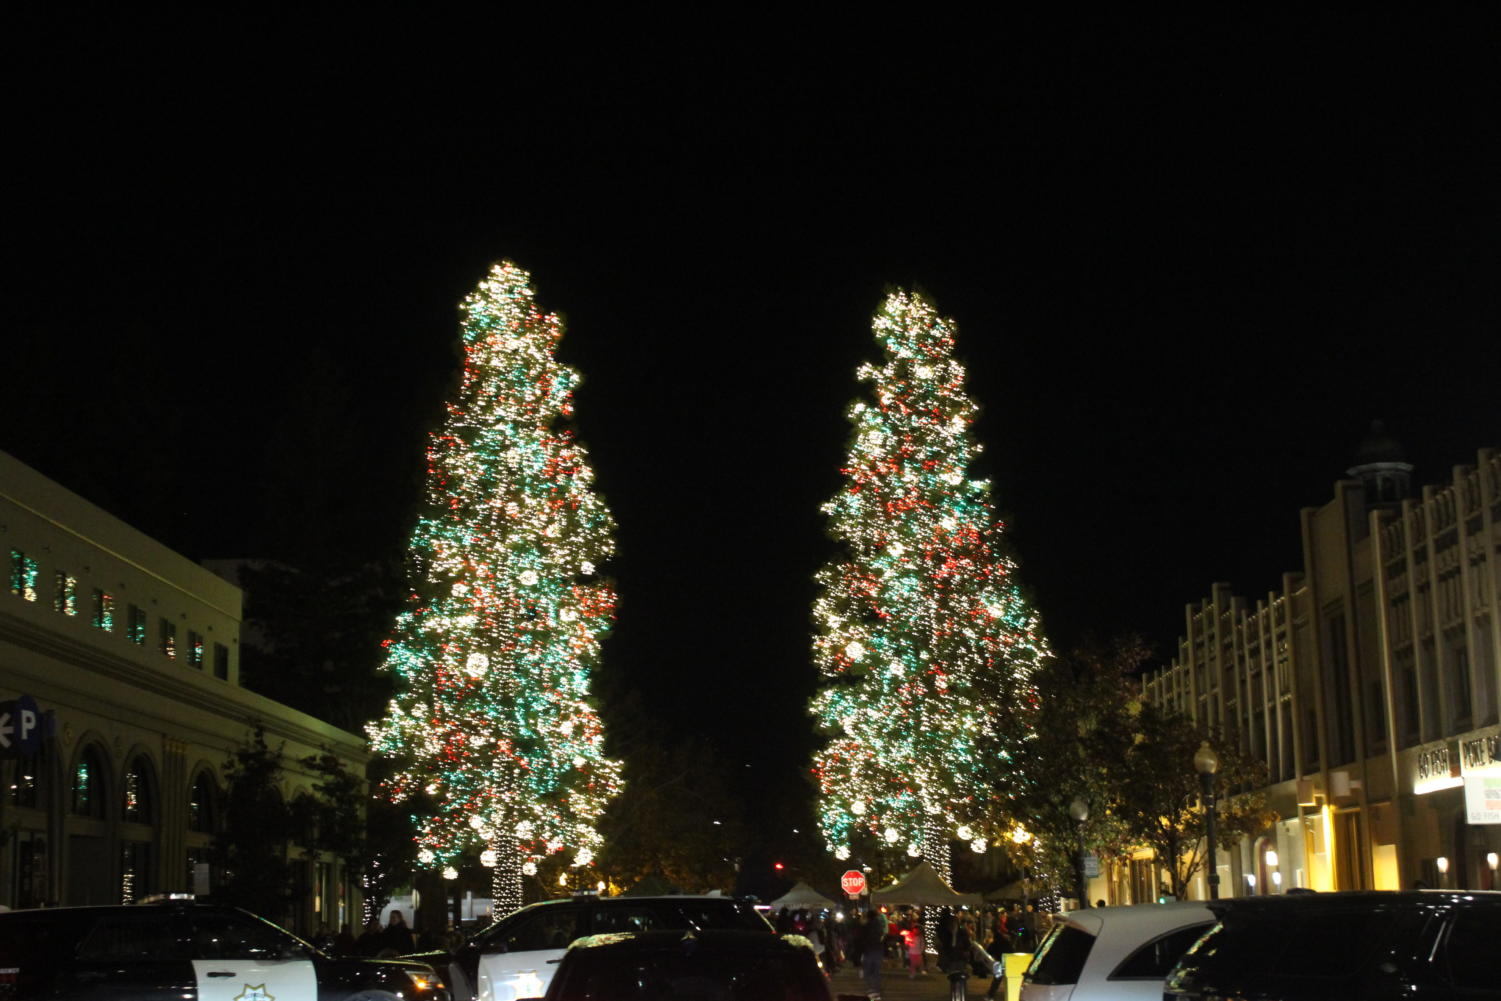 Following+the+Hometown+Holidays+traditions%2C+two+Christmas+trees+were+adorned+with+sparkling+holiday+lights.